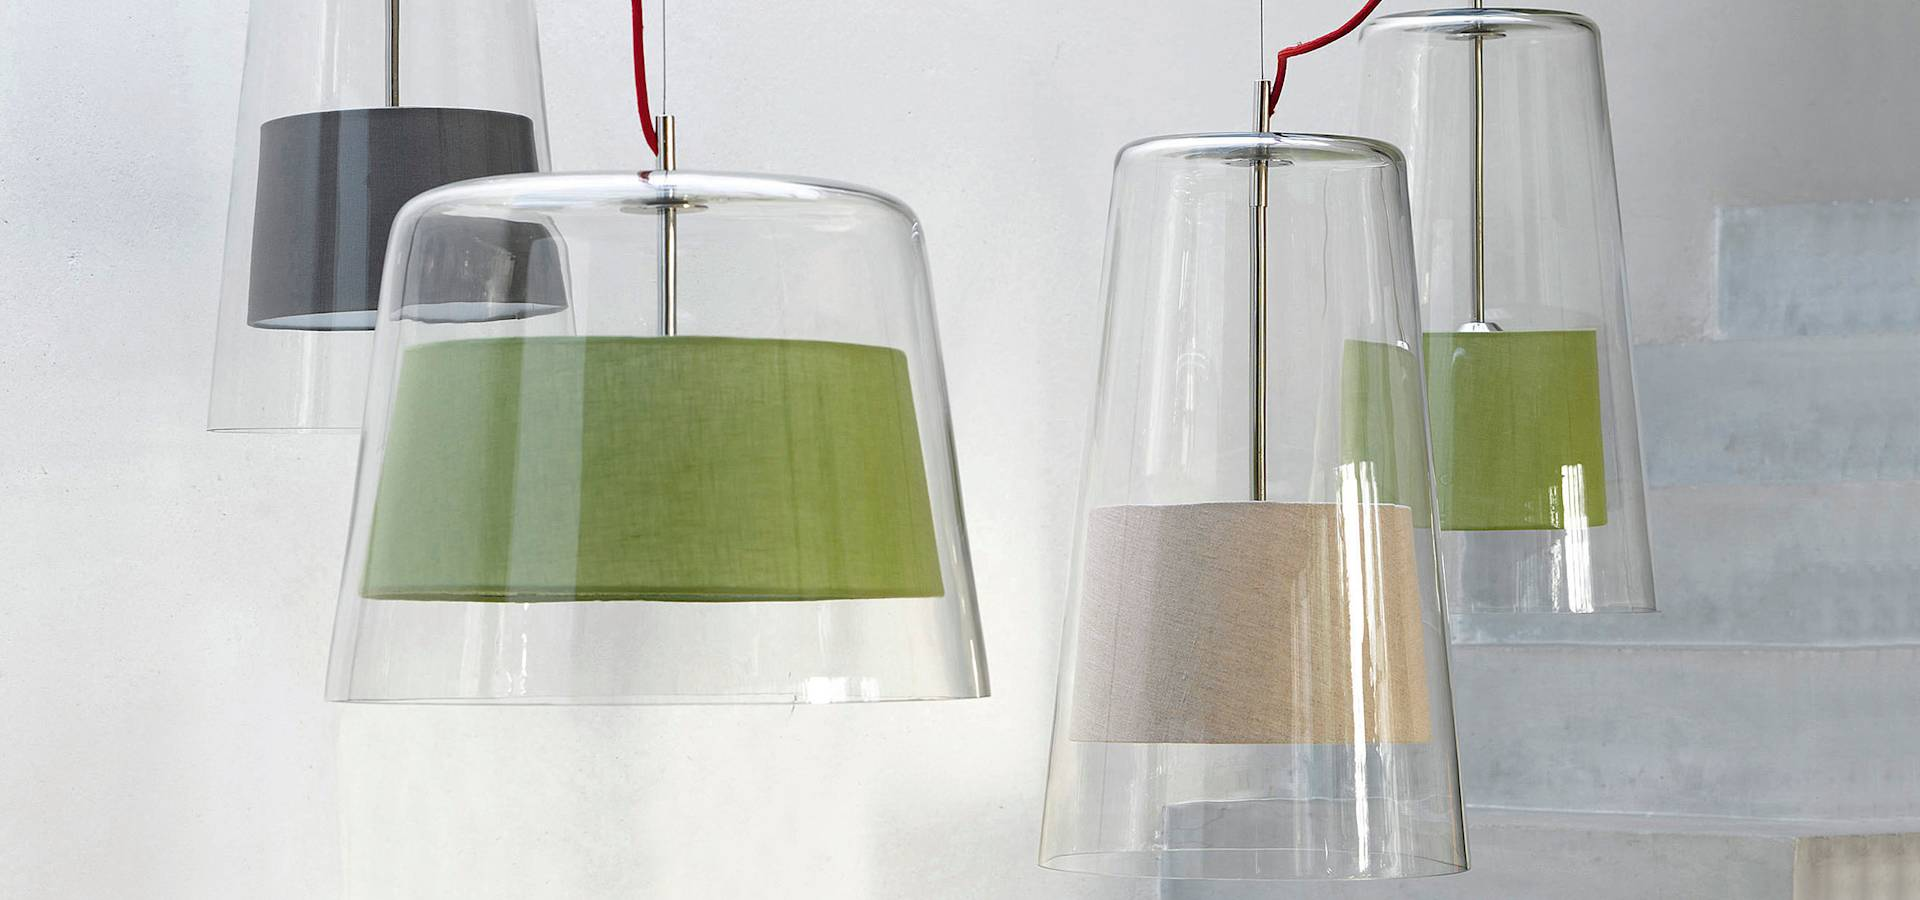 Collection luminaires duo design emmanuel gallina pour am pm de emmanuel gall - Emmanuel gallina ampm ...